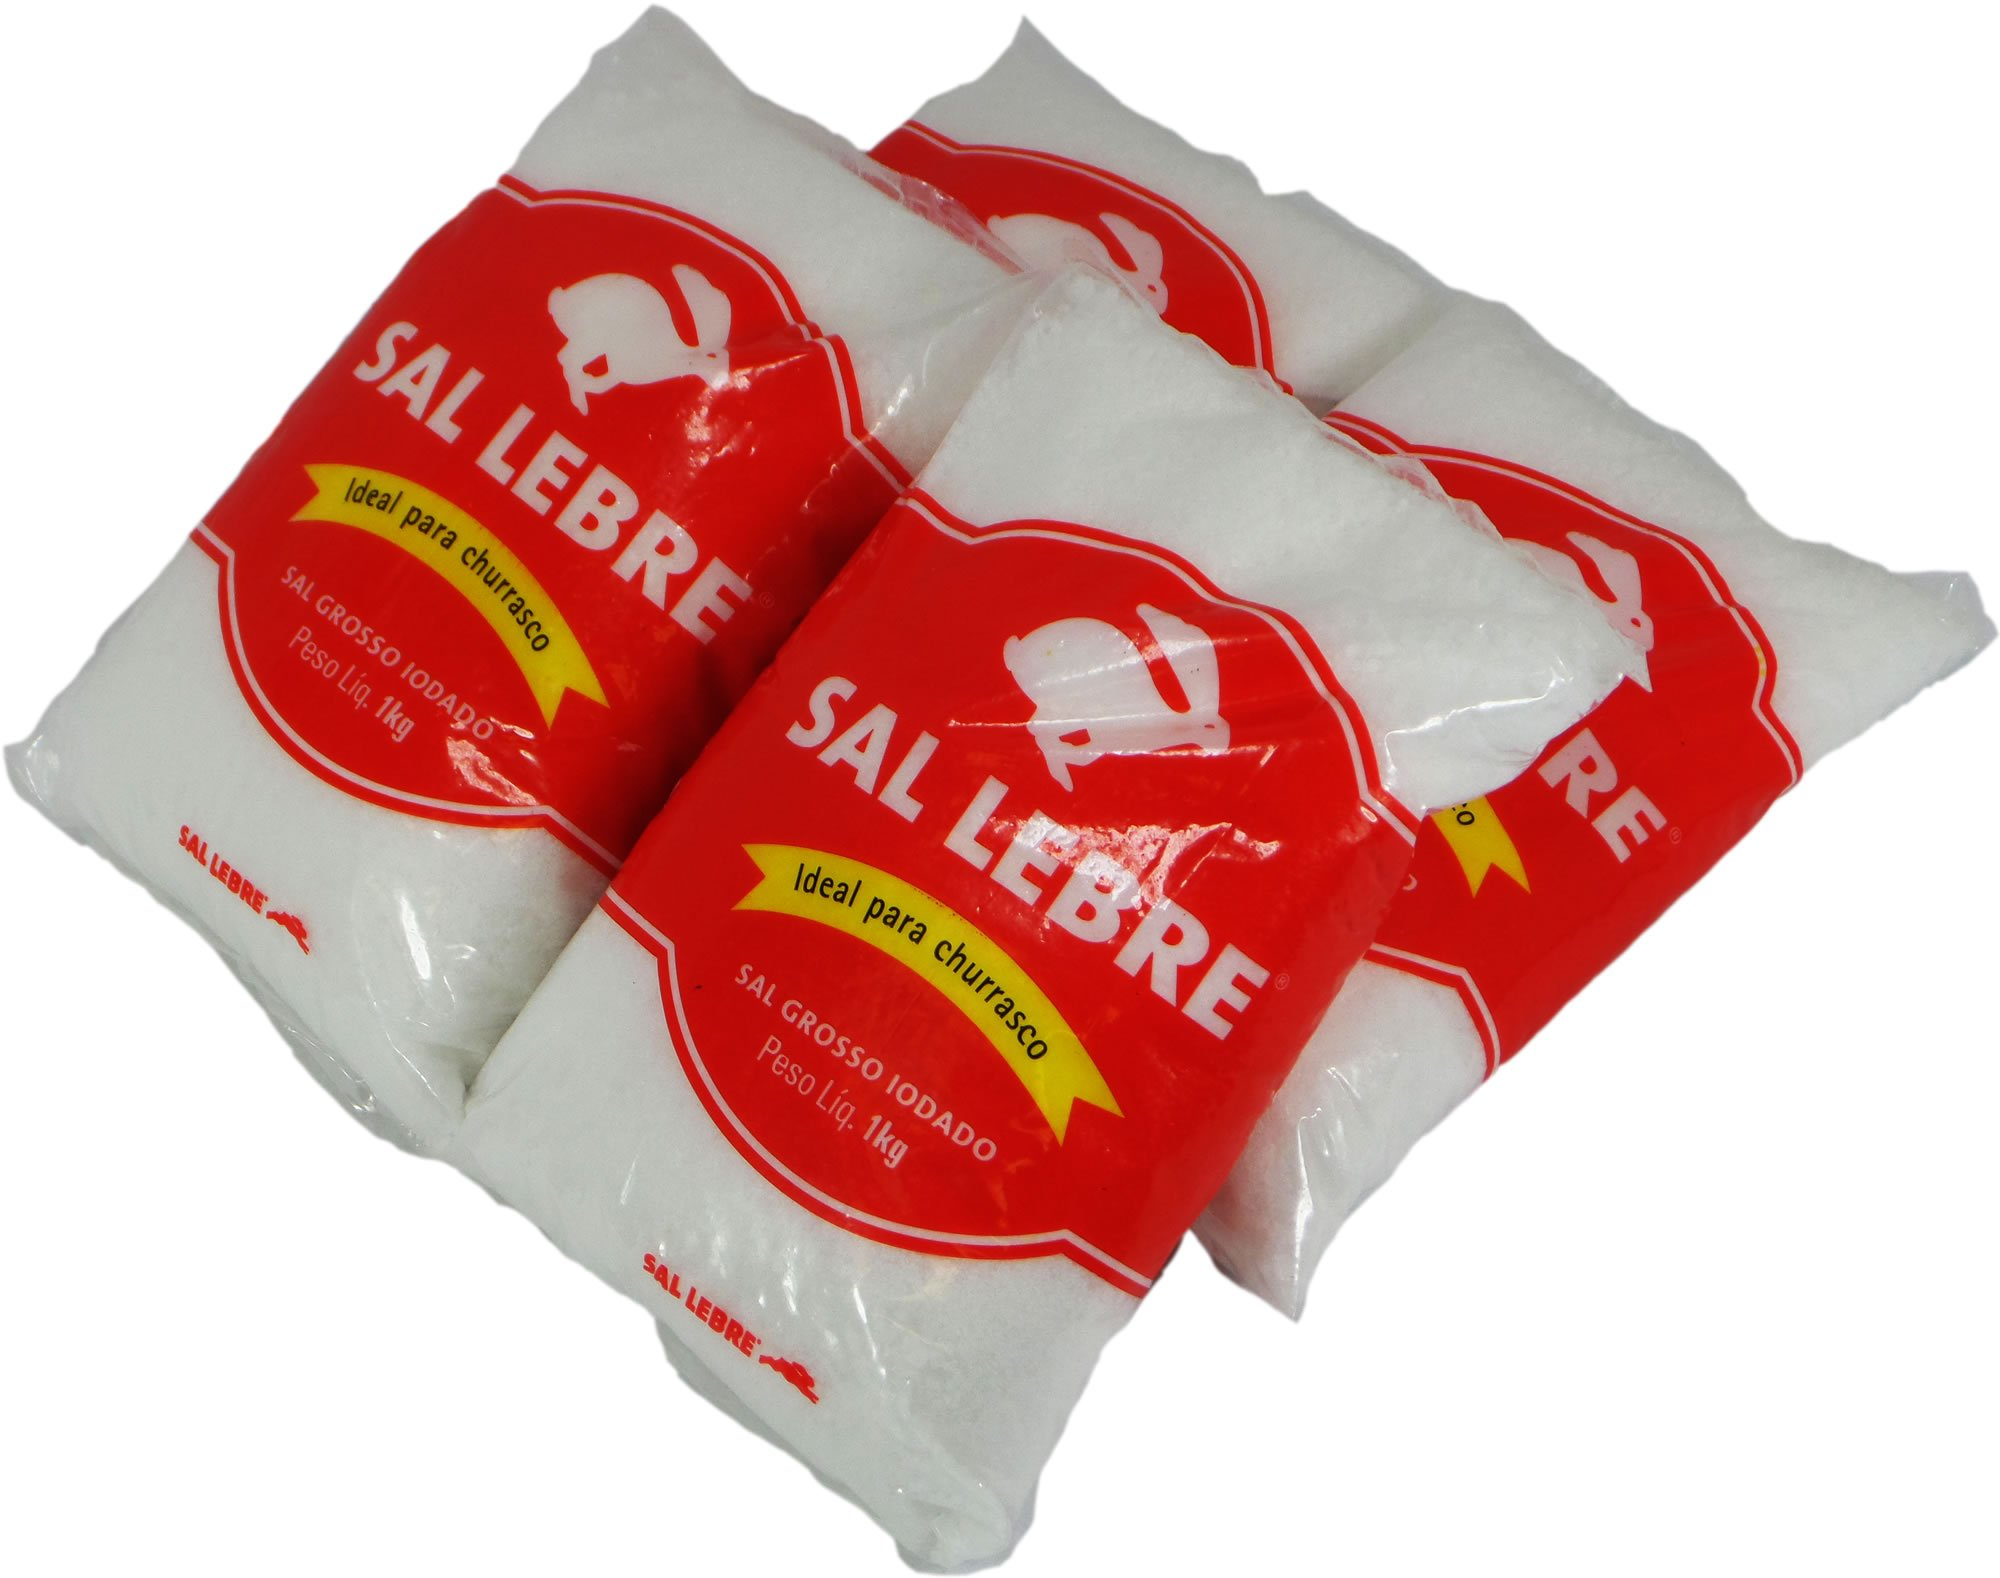 Lebre - Barbecue Salt - 35.27 oz. (PACK OF 04) | Sal p/ Churrasco - 1kg